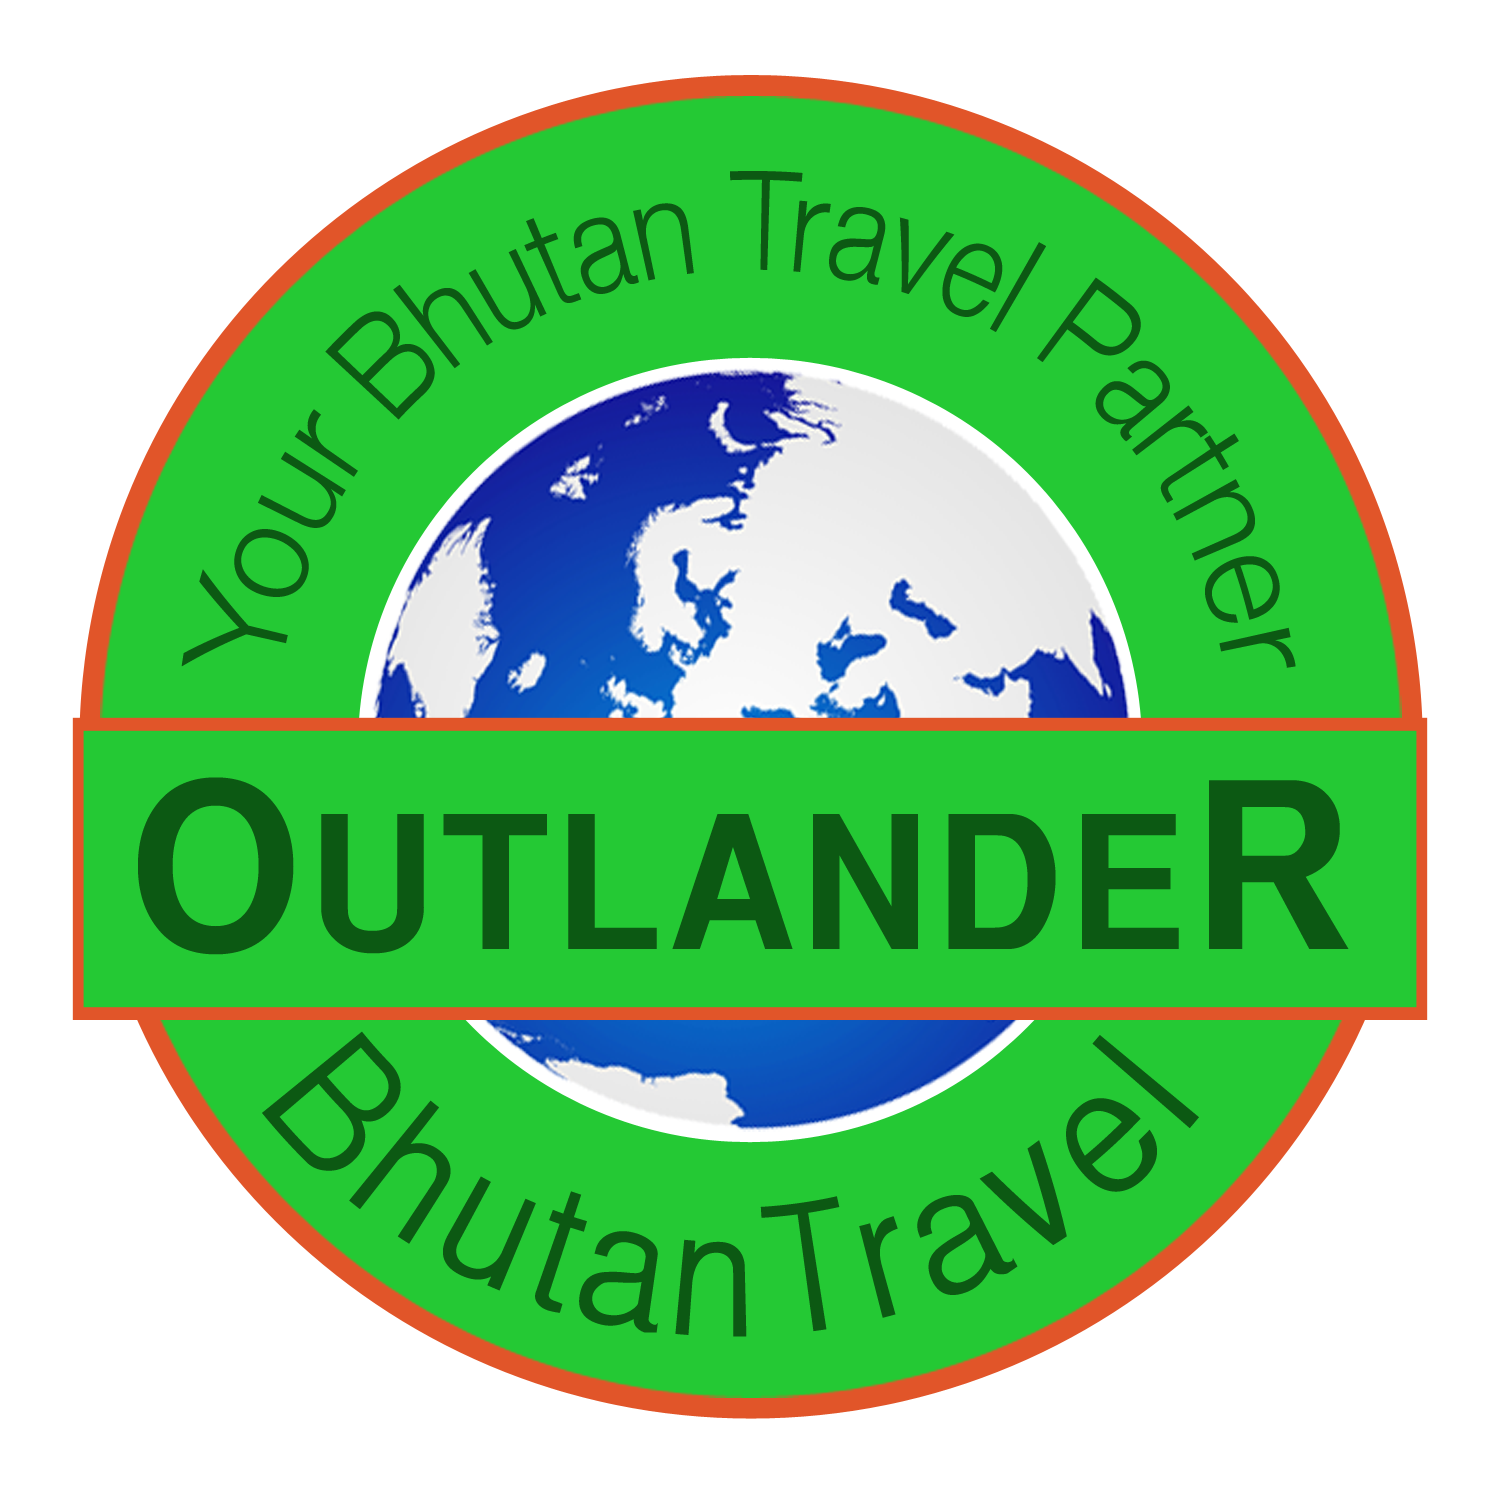 <div style='display: table-cell; vertical-align: top; '><img src='/uploads/utilizadores/user-photo-060815220523.png' width='100' /> Bhutan Outlander Travel</div>